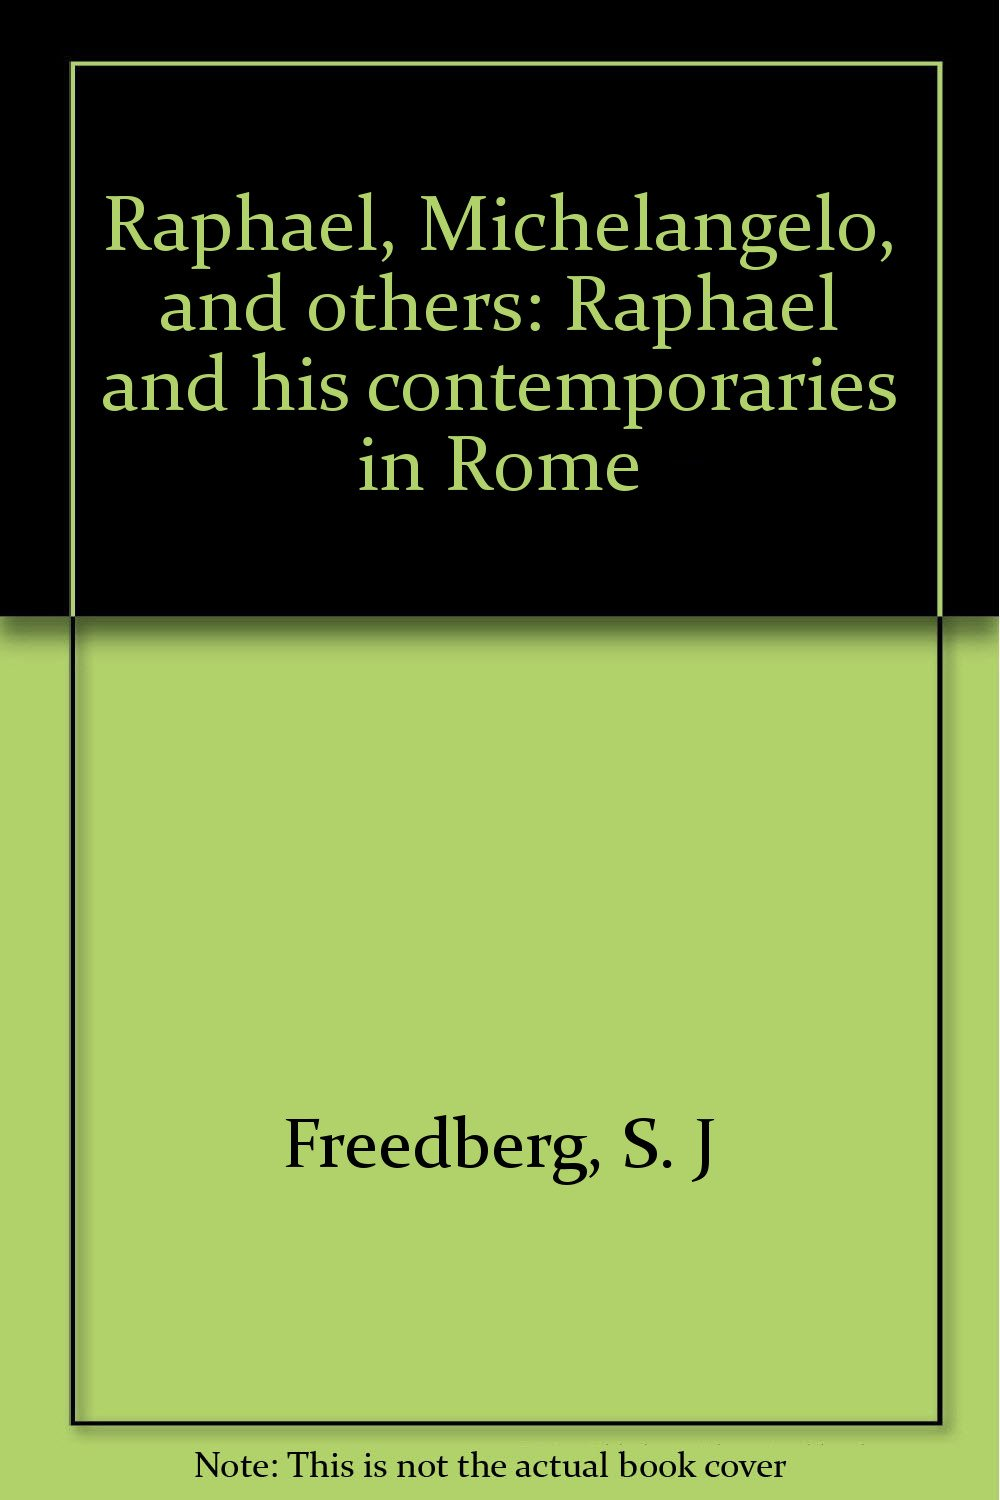 raphael michelangelo and others raphael and his contemporaries in rome